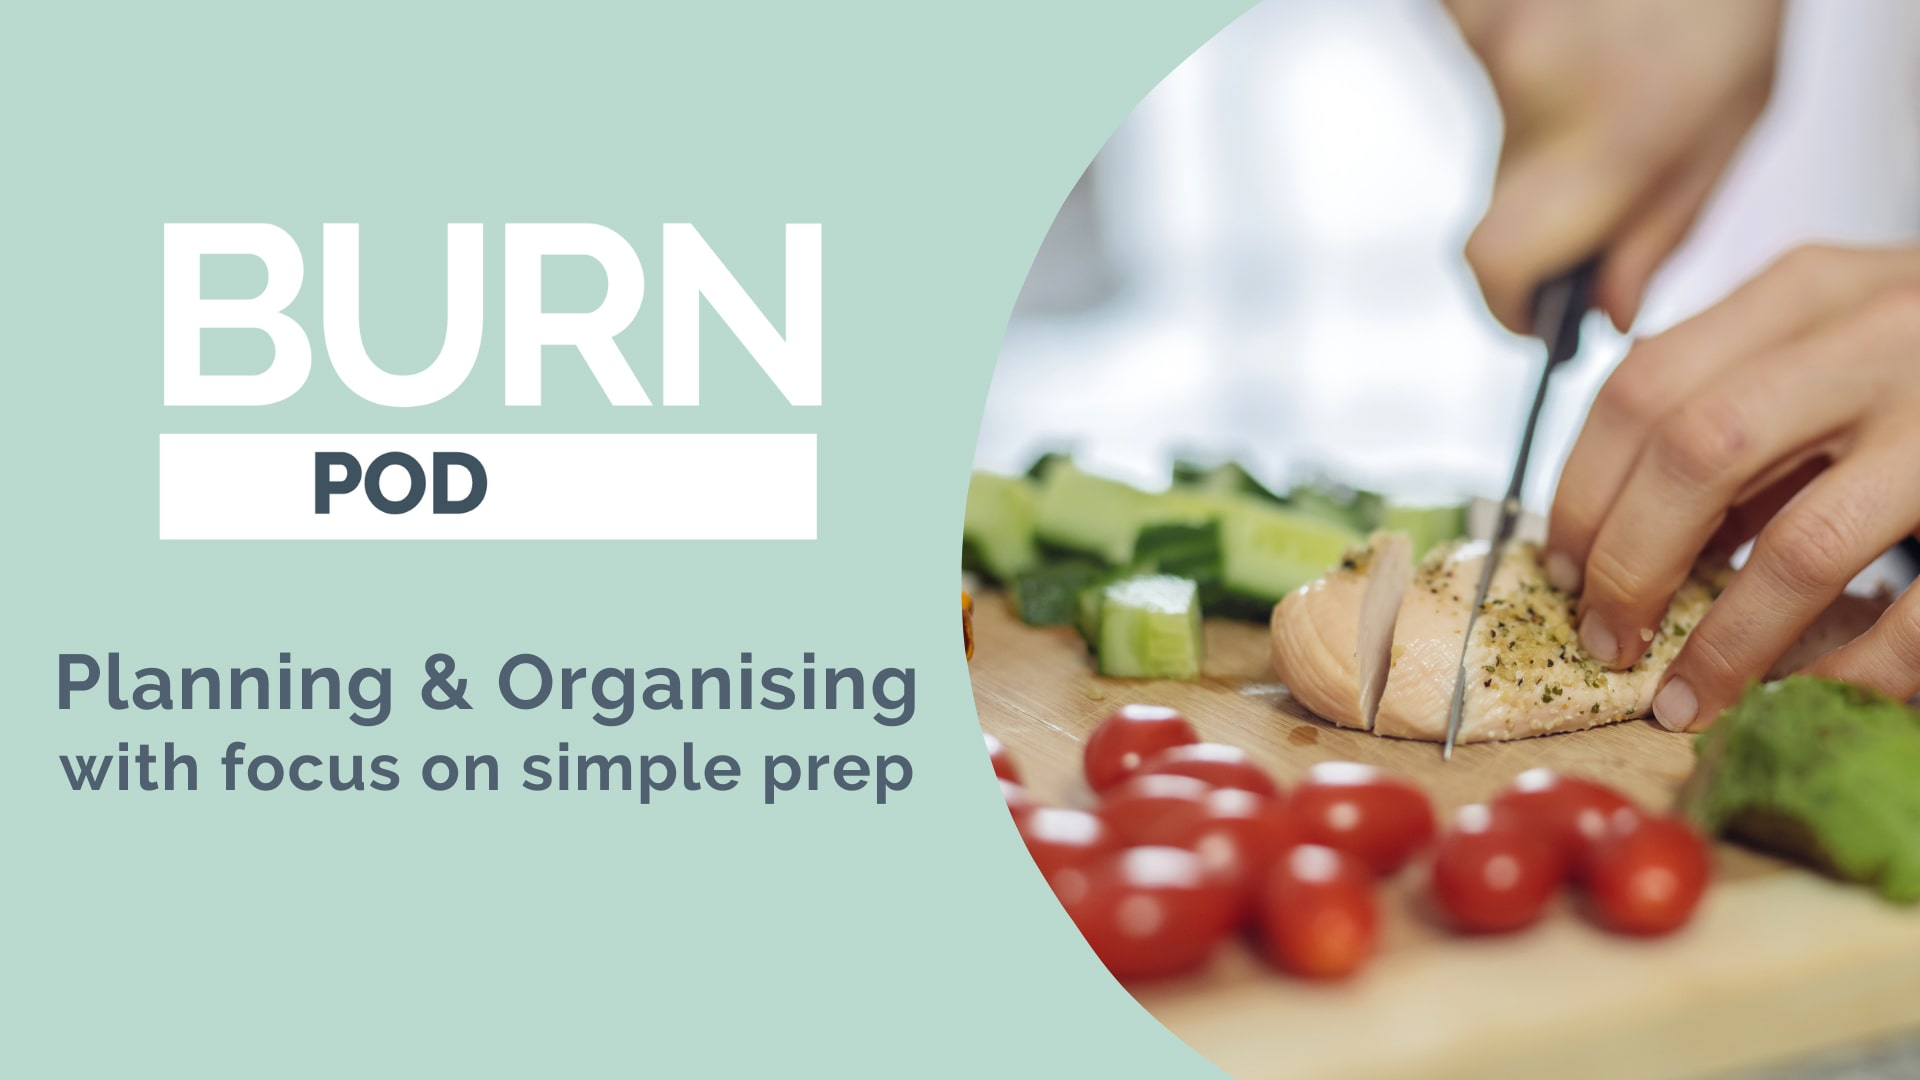 Planning and Organising with focus on simple prep